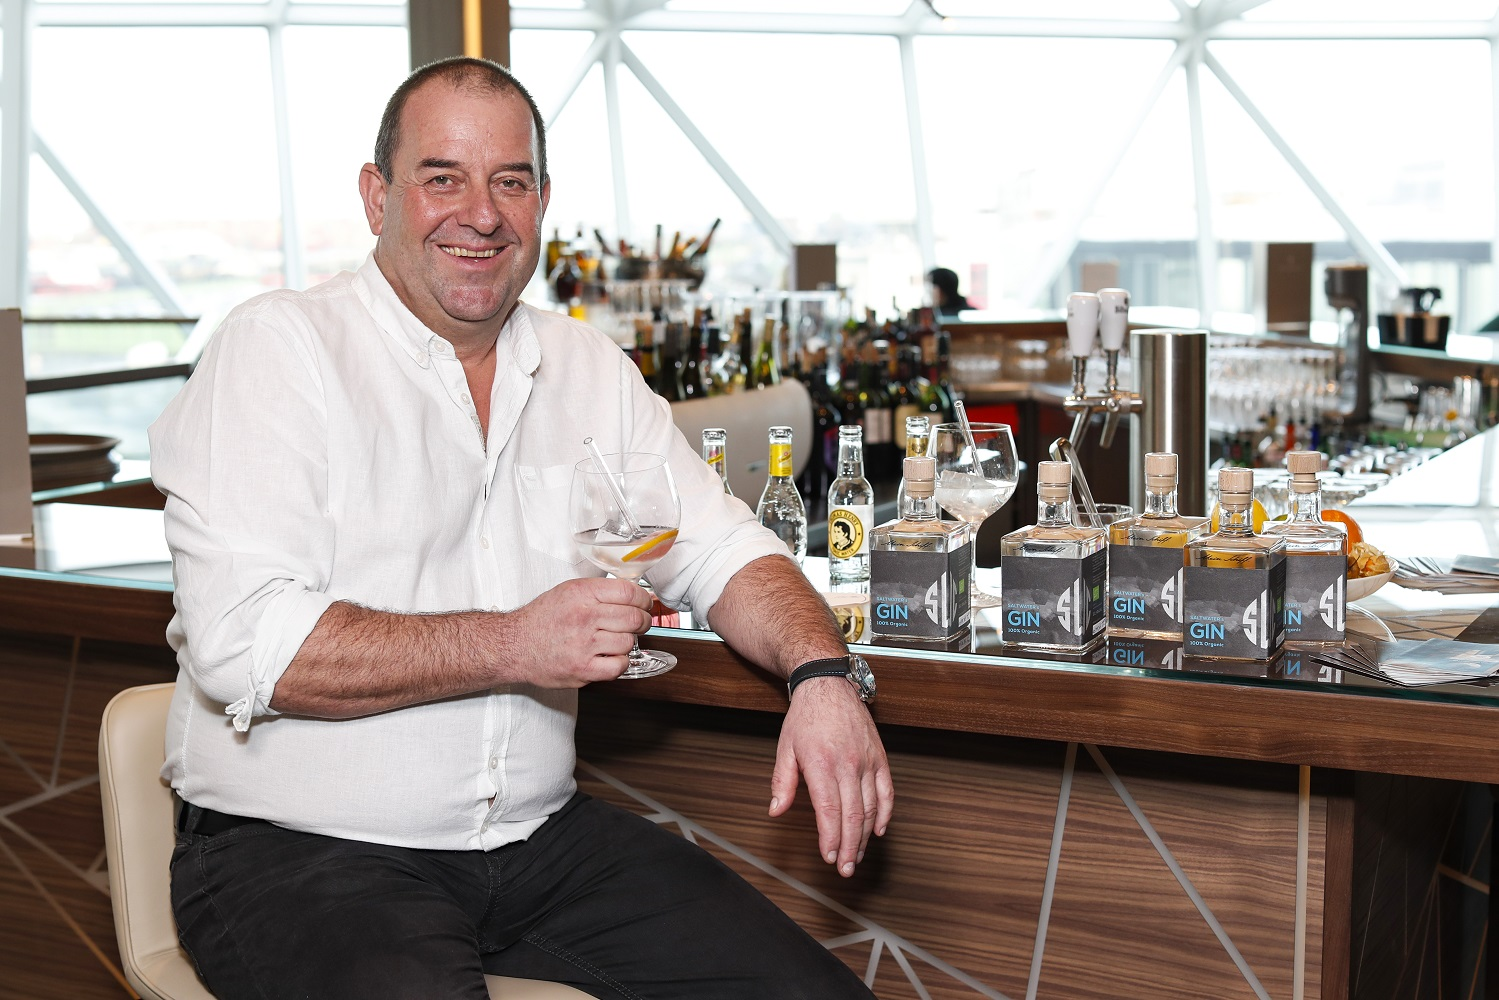 Brennmeister Siegfried Herzog mit dem Mein Schiff Gin (Photo by Franziska Krug/Getty Images for TUI Cruises)